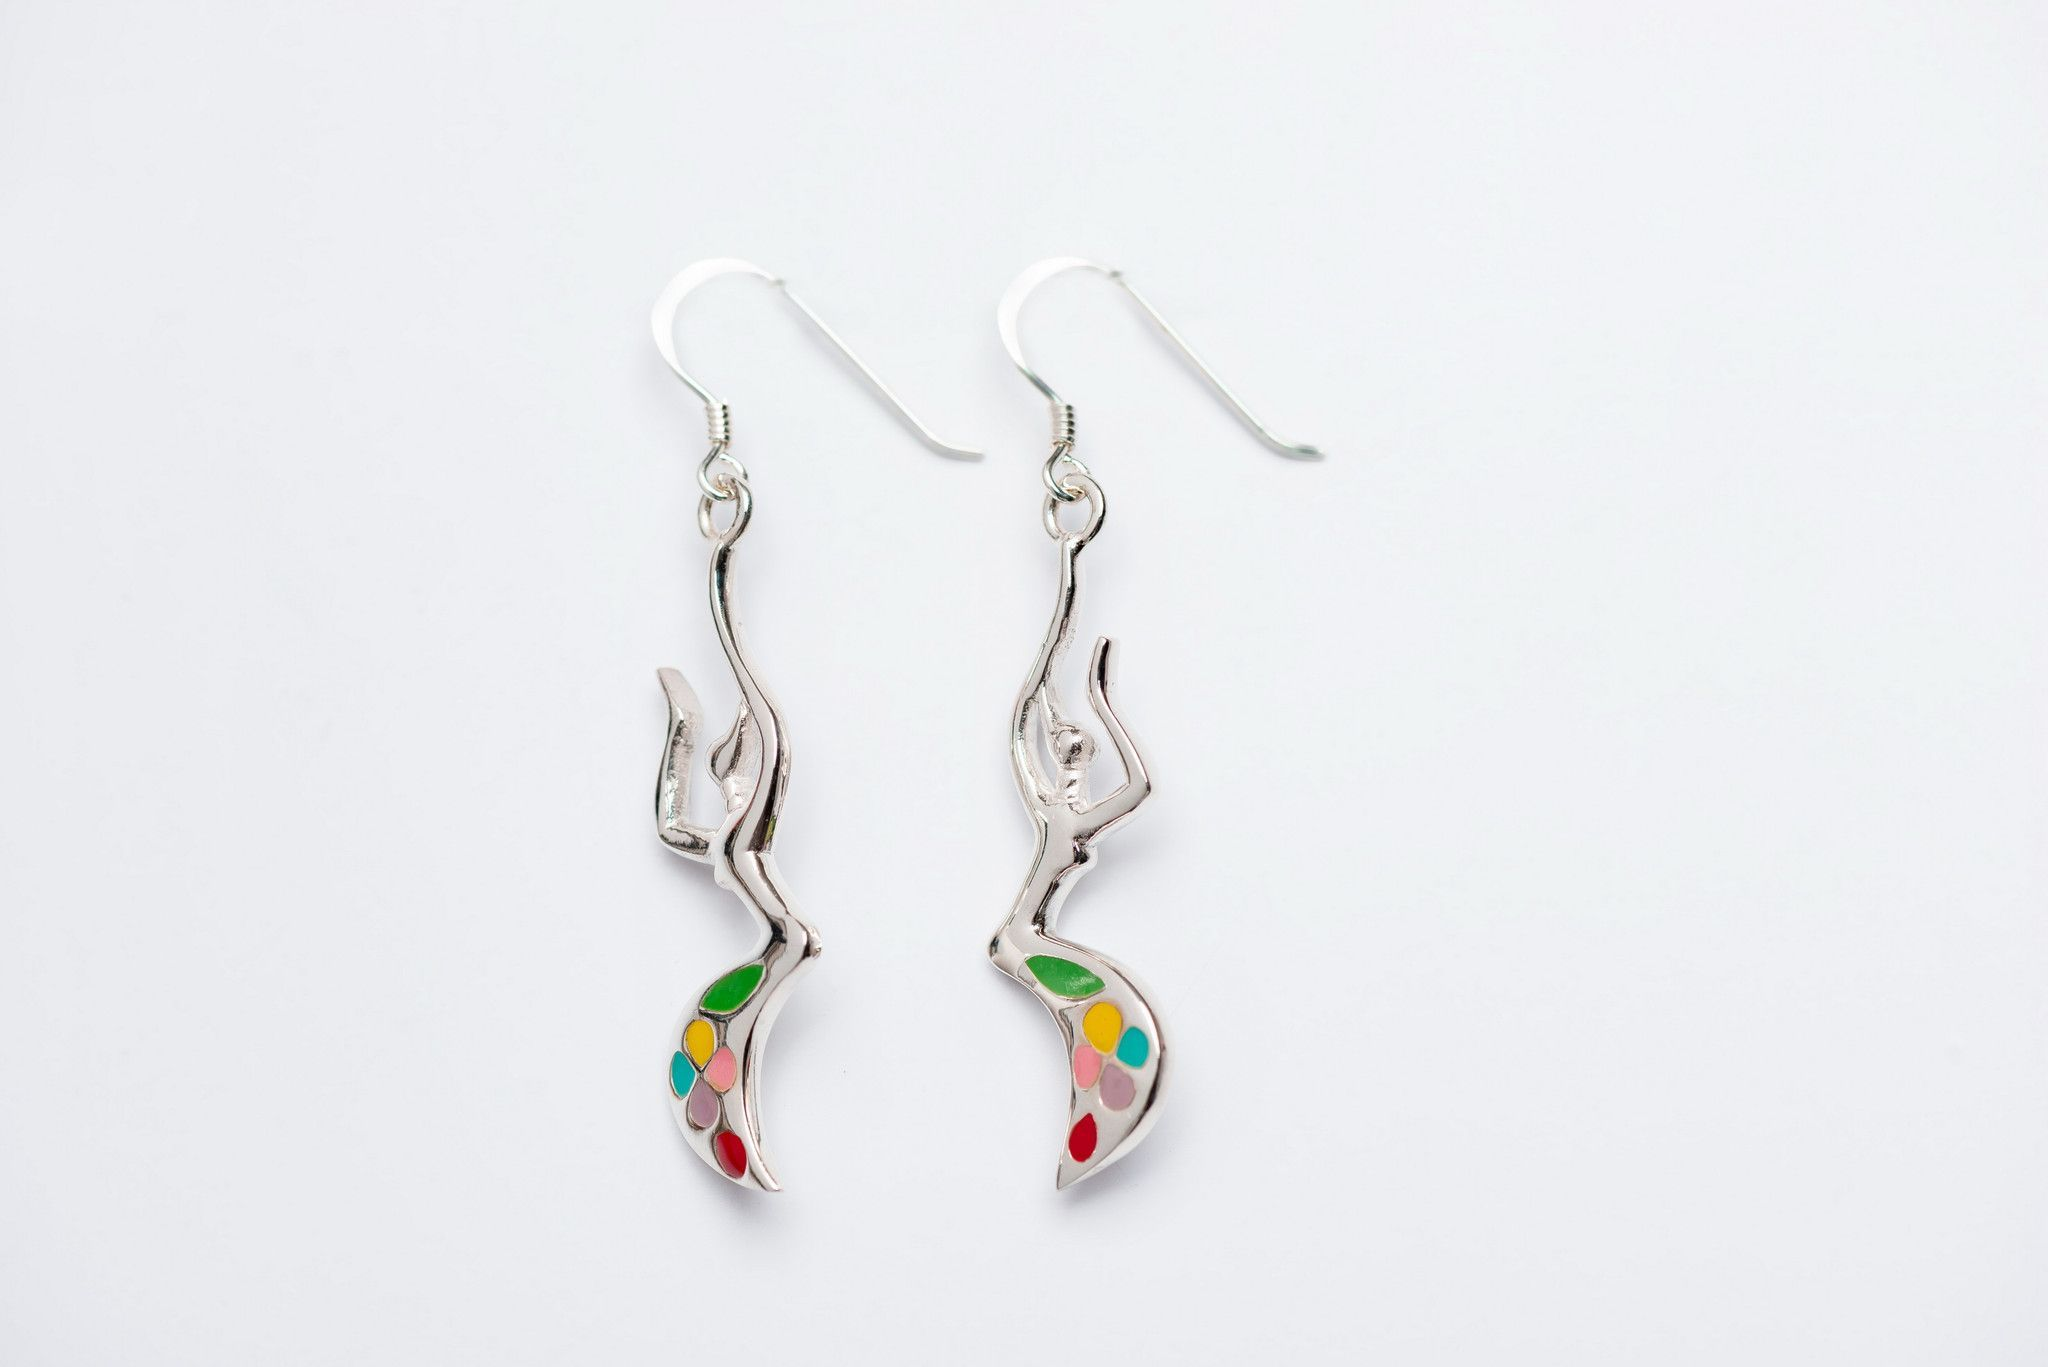 thai earrings drop earring